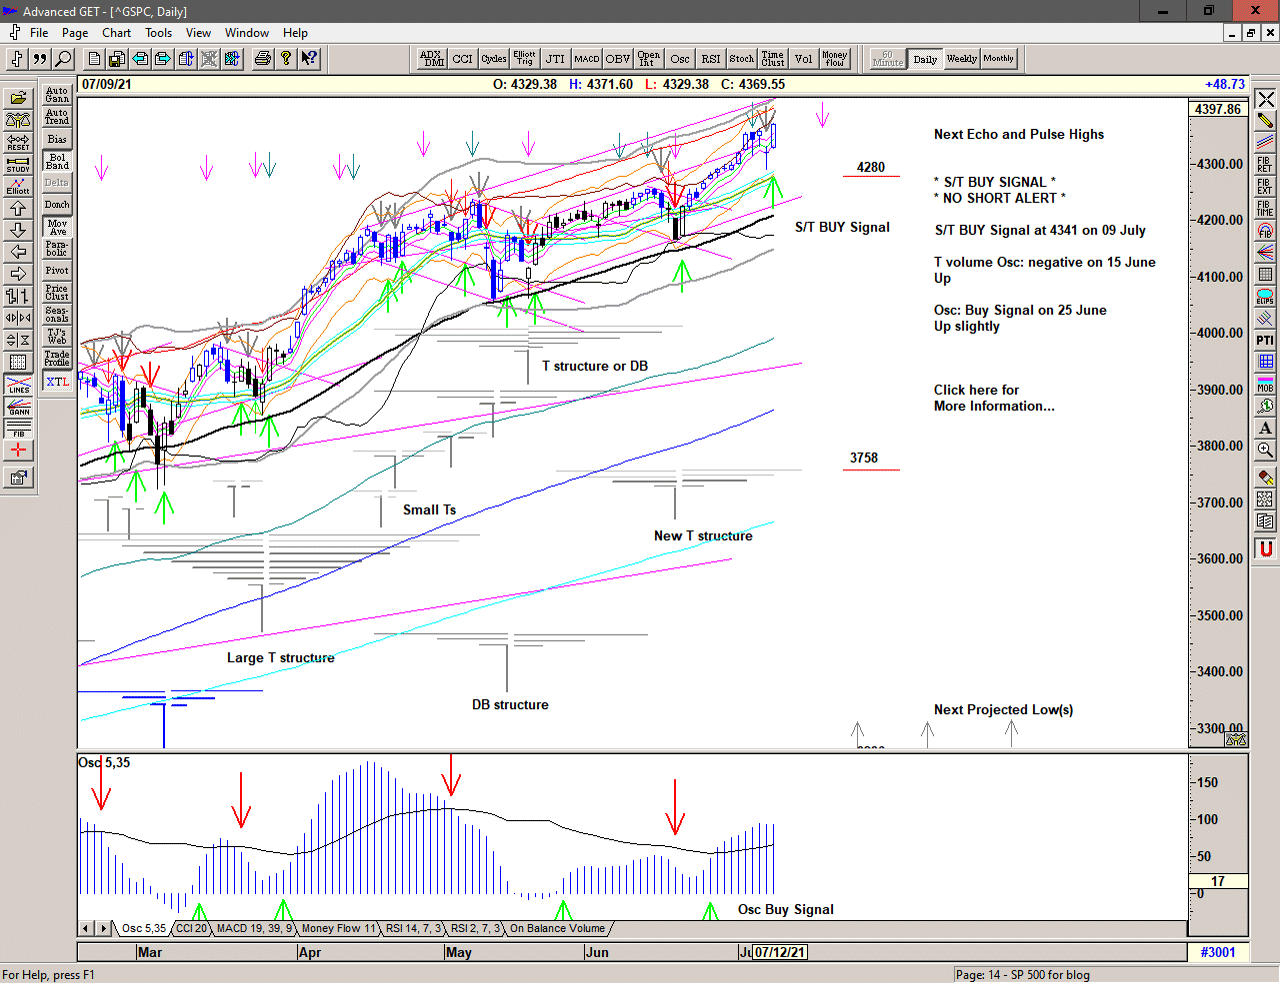 Daily chart of S&P 500 for 12 July 2021